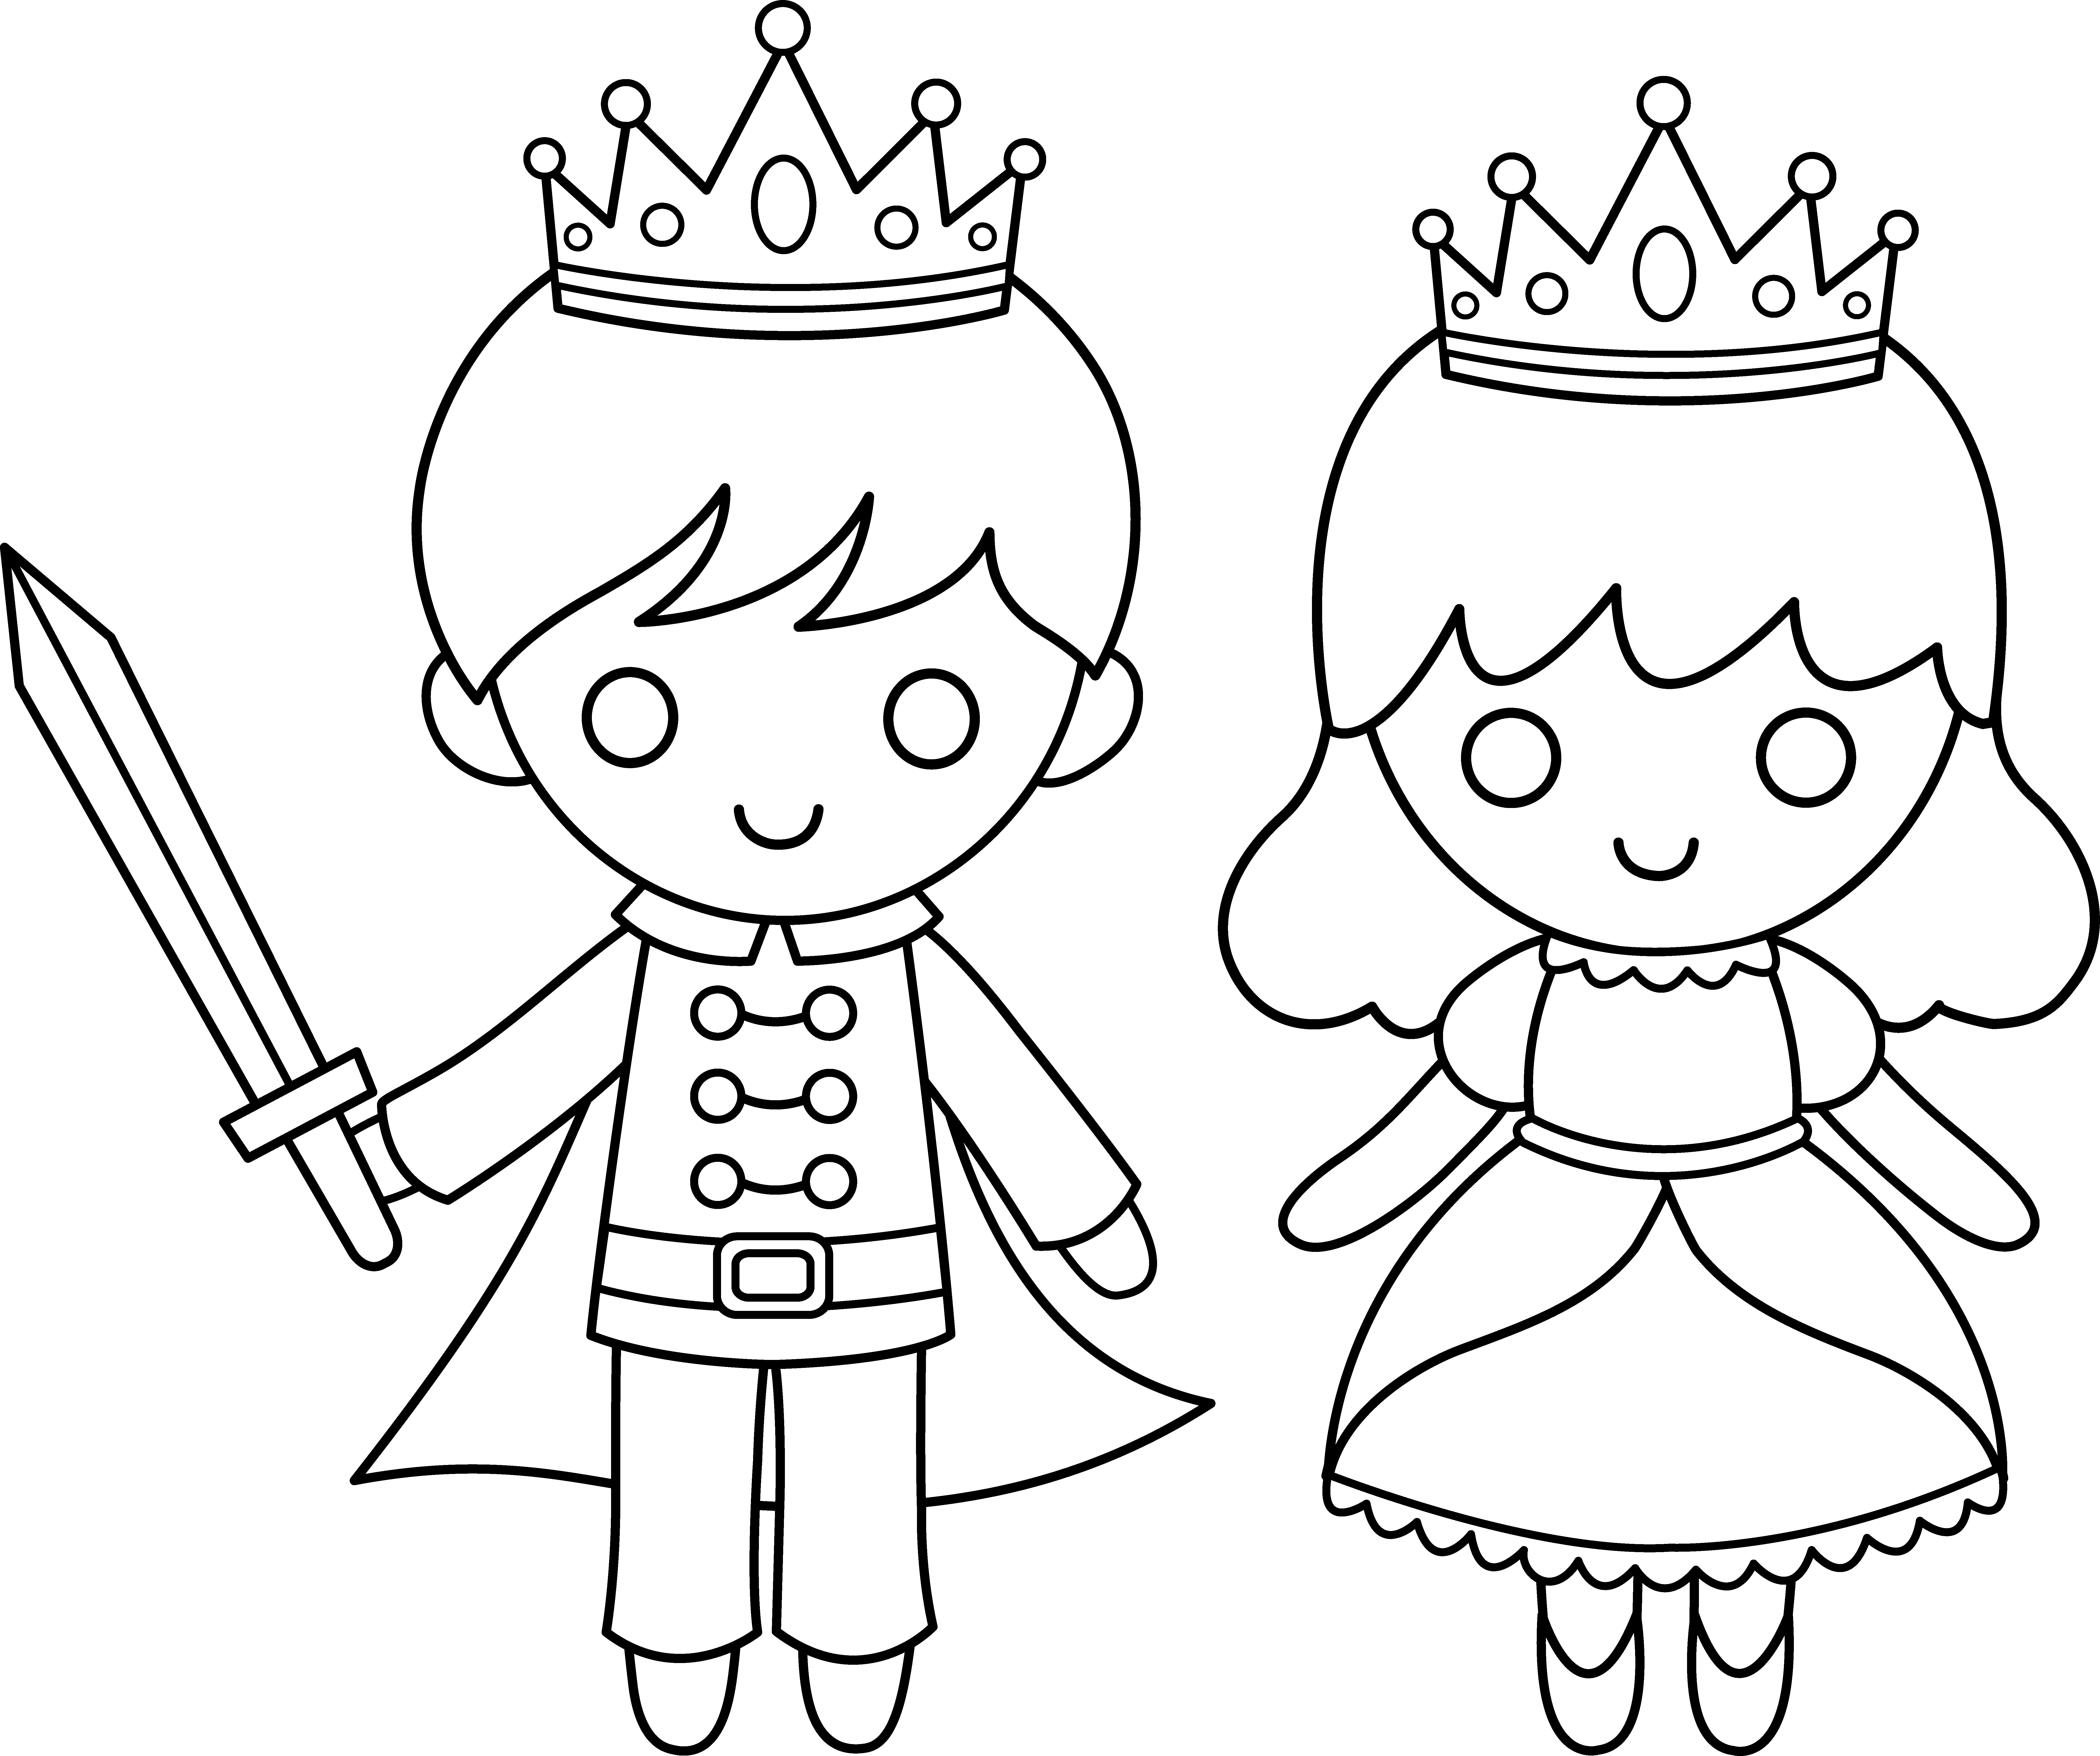 A prince clipart balck and white image transparent library Prince and Princess Line Art   DRAWING   Princess coloring pages ... image transparent library